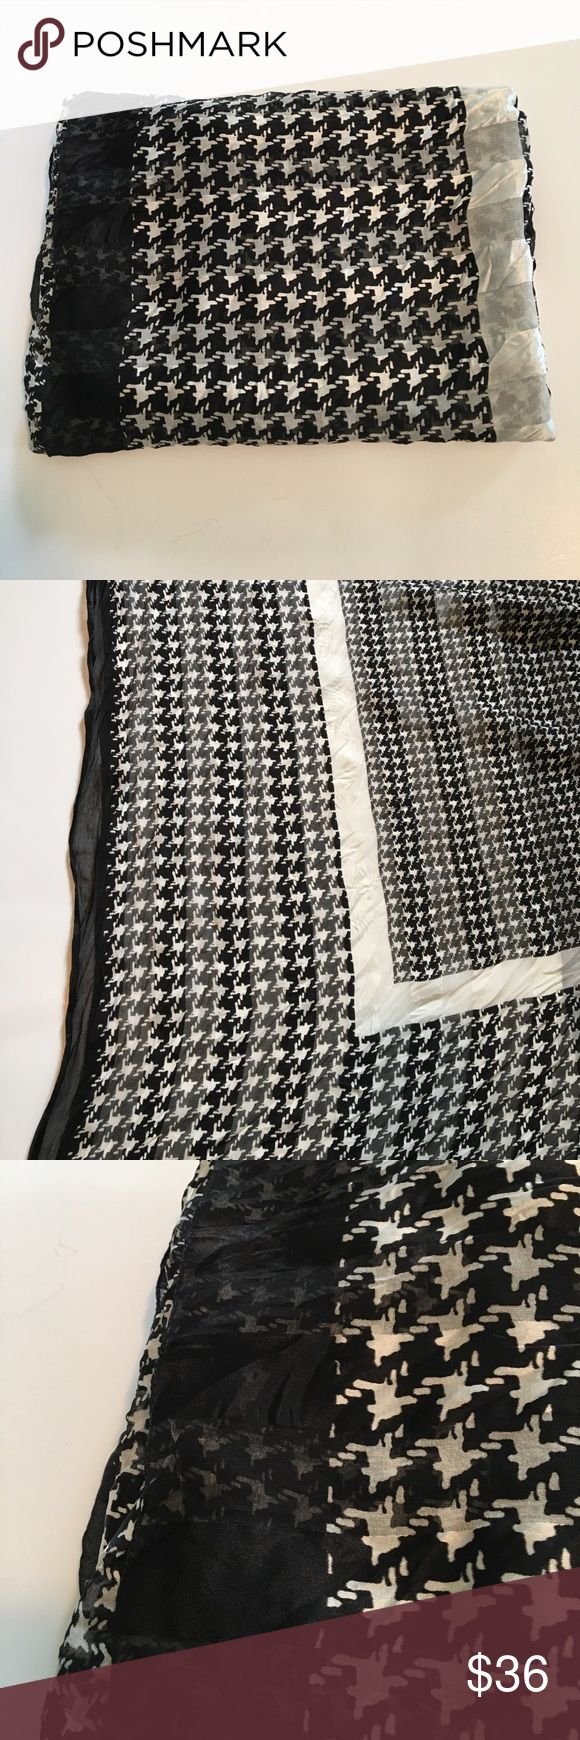 💕💕Nordstrom Houndstooth Scarf Classic ... Large Square Houndstooth Scarf , Finishes An Outfit ! ( Always Received Compliments When Wearing ! ) Nordstrom Accessories Scarves & Wraps